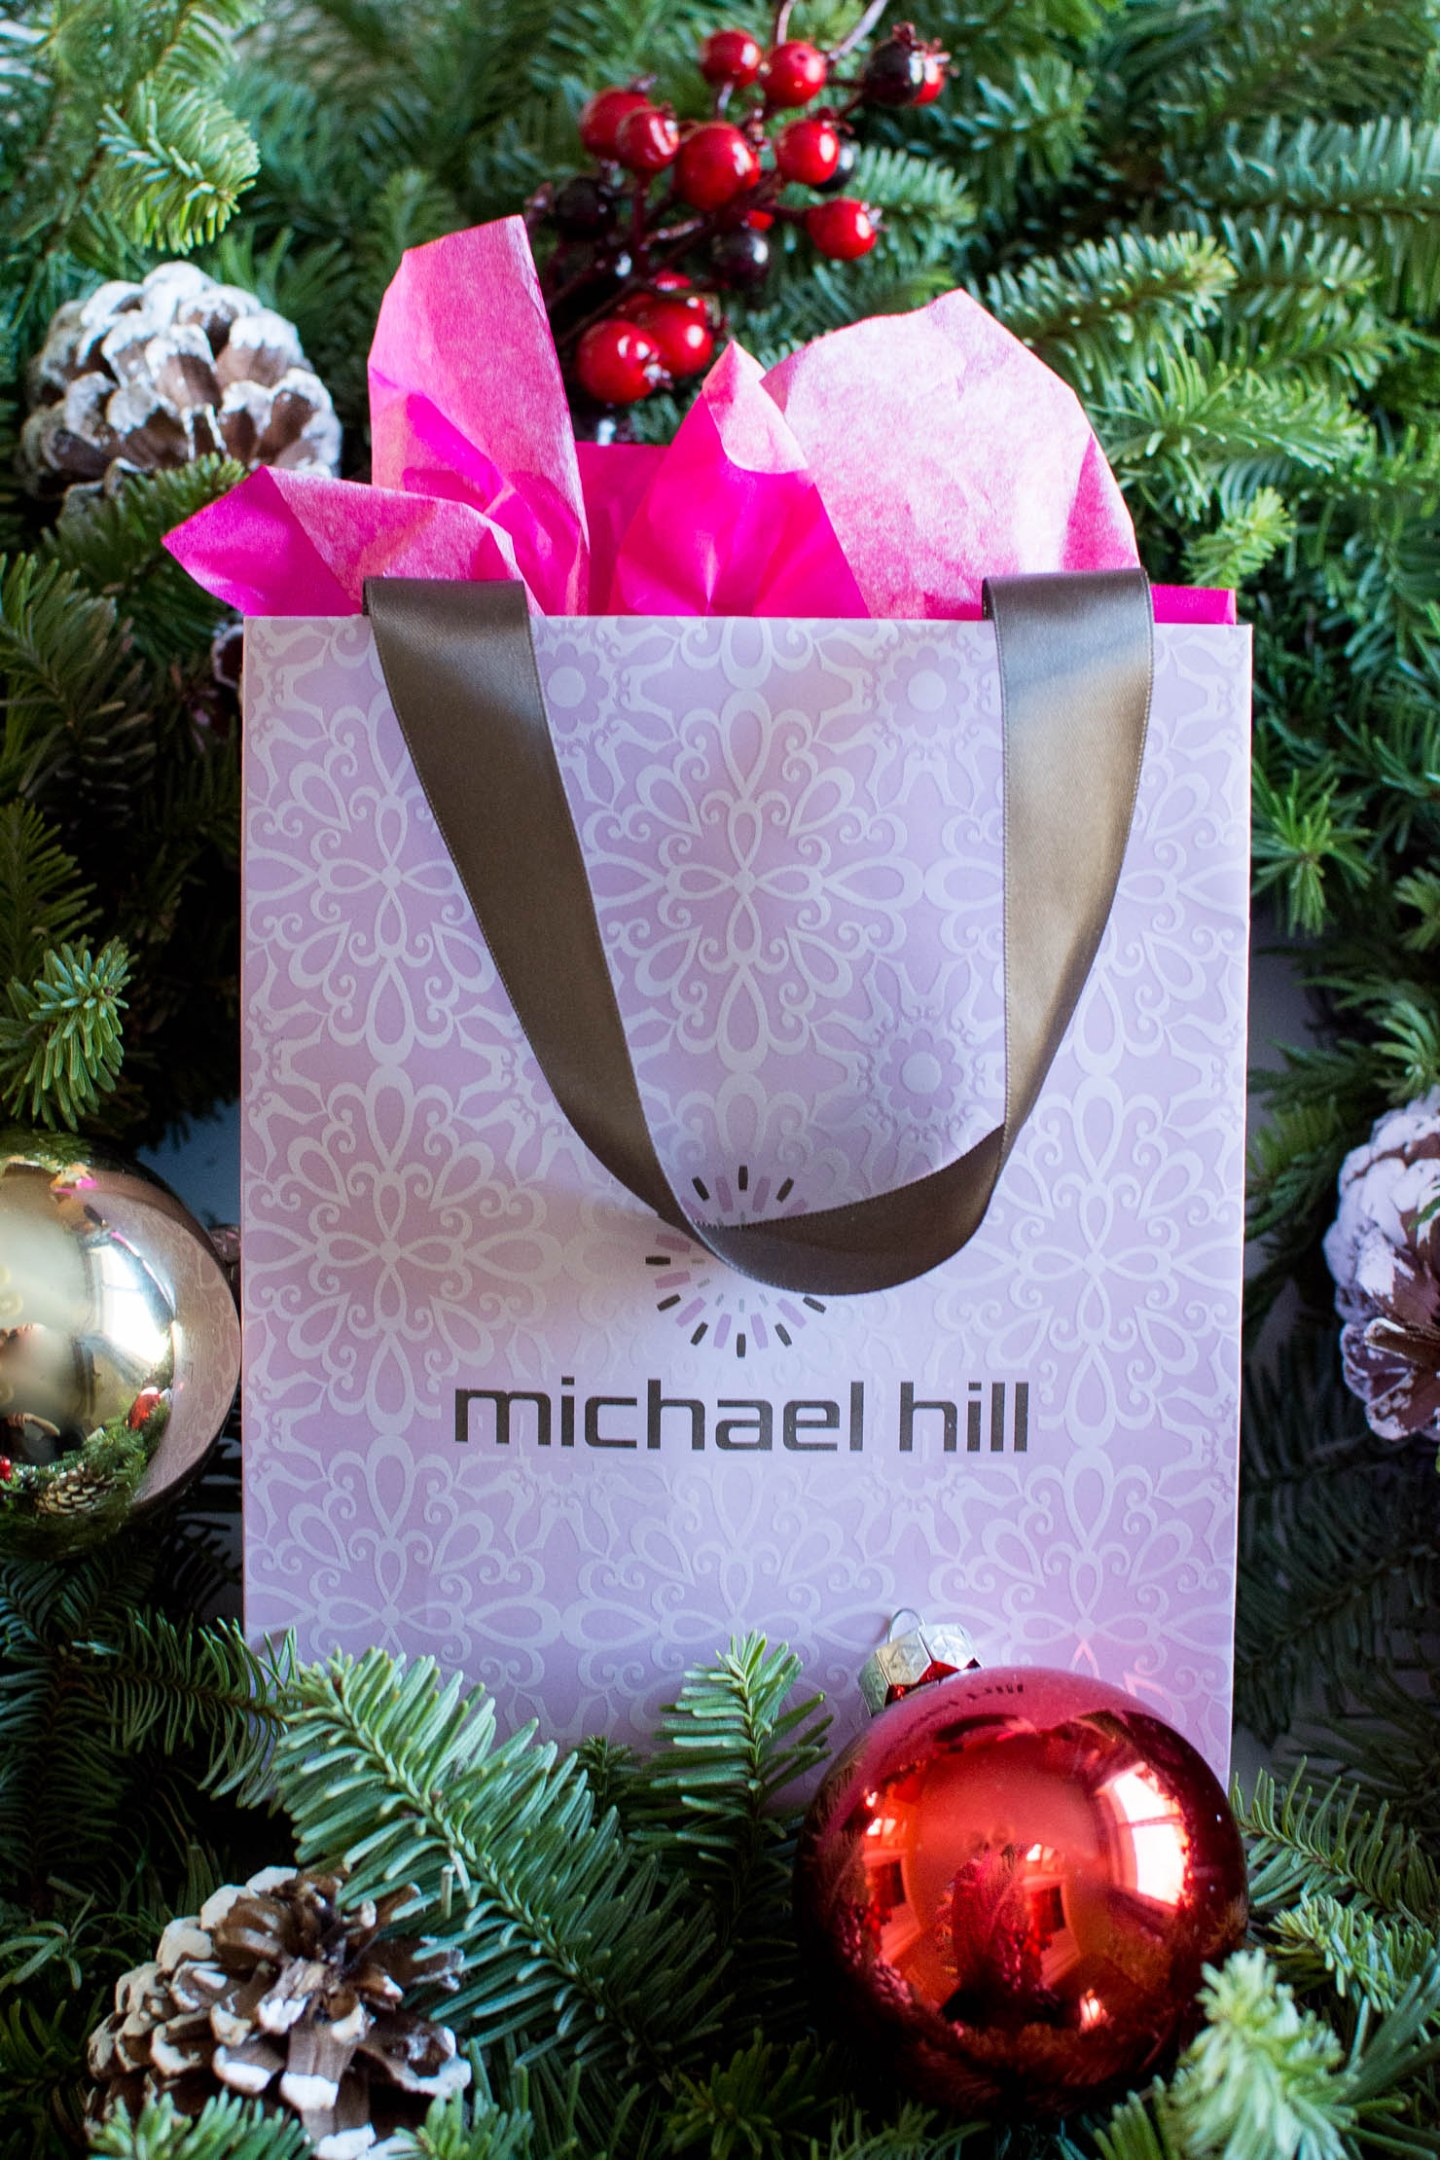 The Perfect Gift for Your Best Girlfriend, michael hill for the holidays, jewelry gifts for your best friend under $100 jewelry gifts, blogger bestie